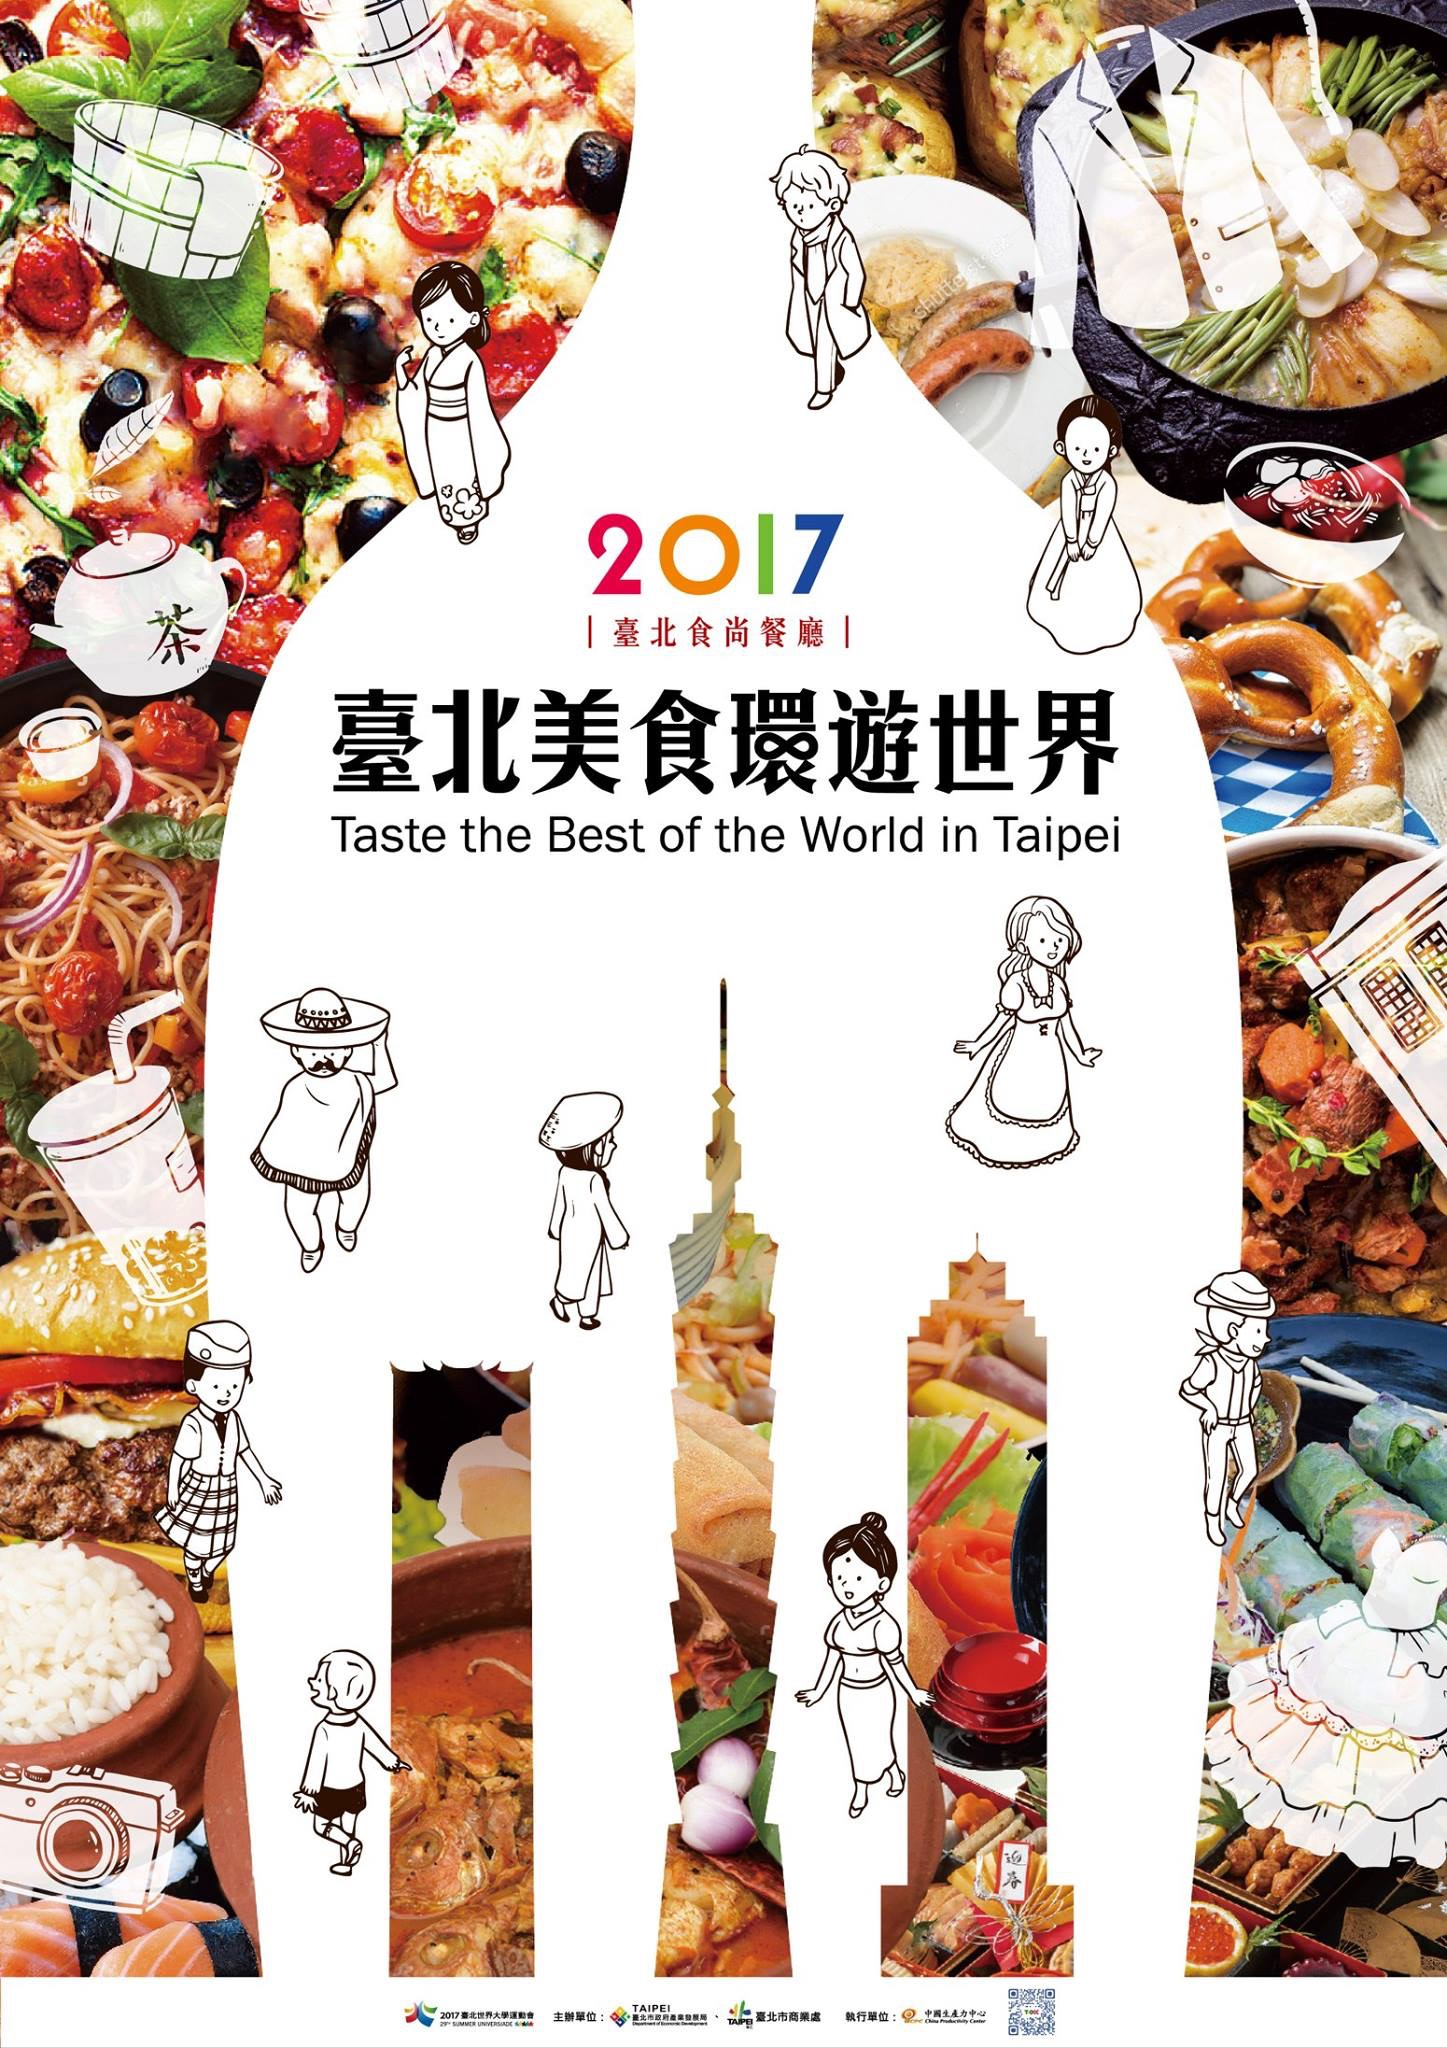 2017 Taste the Best Of the world in Taipei